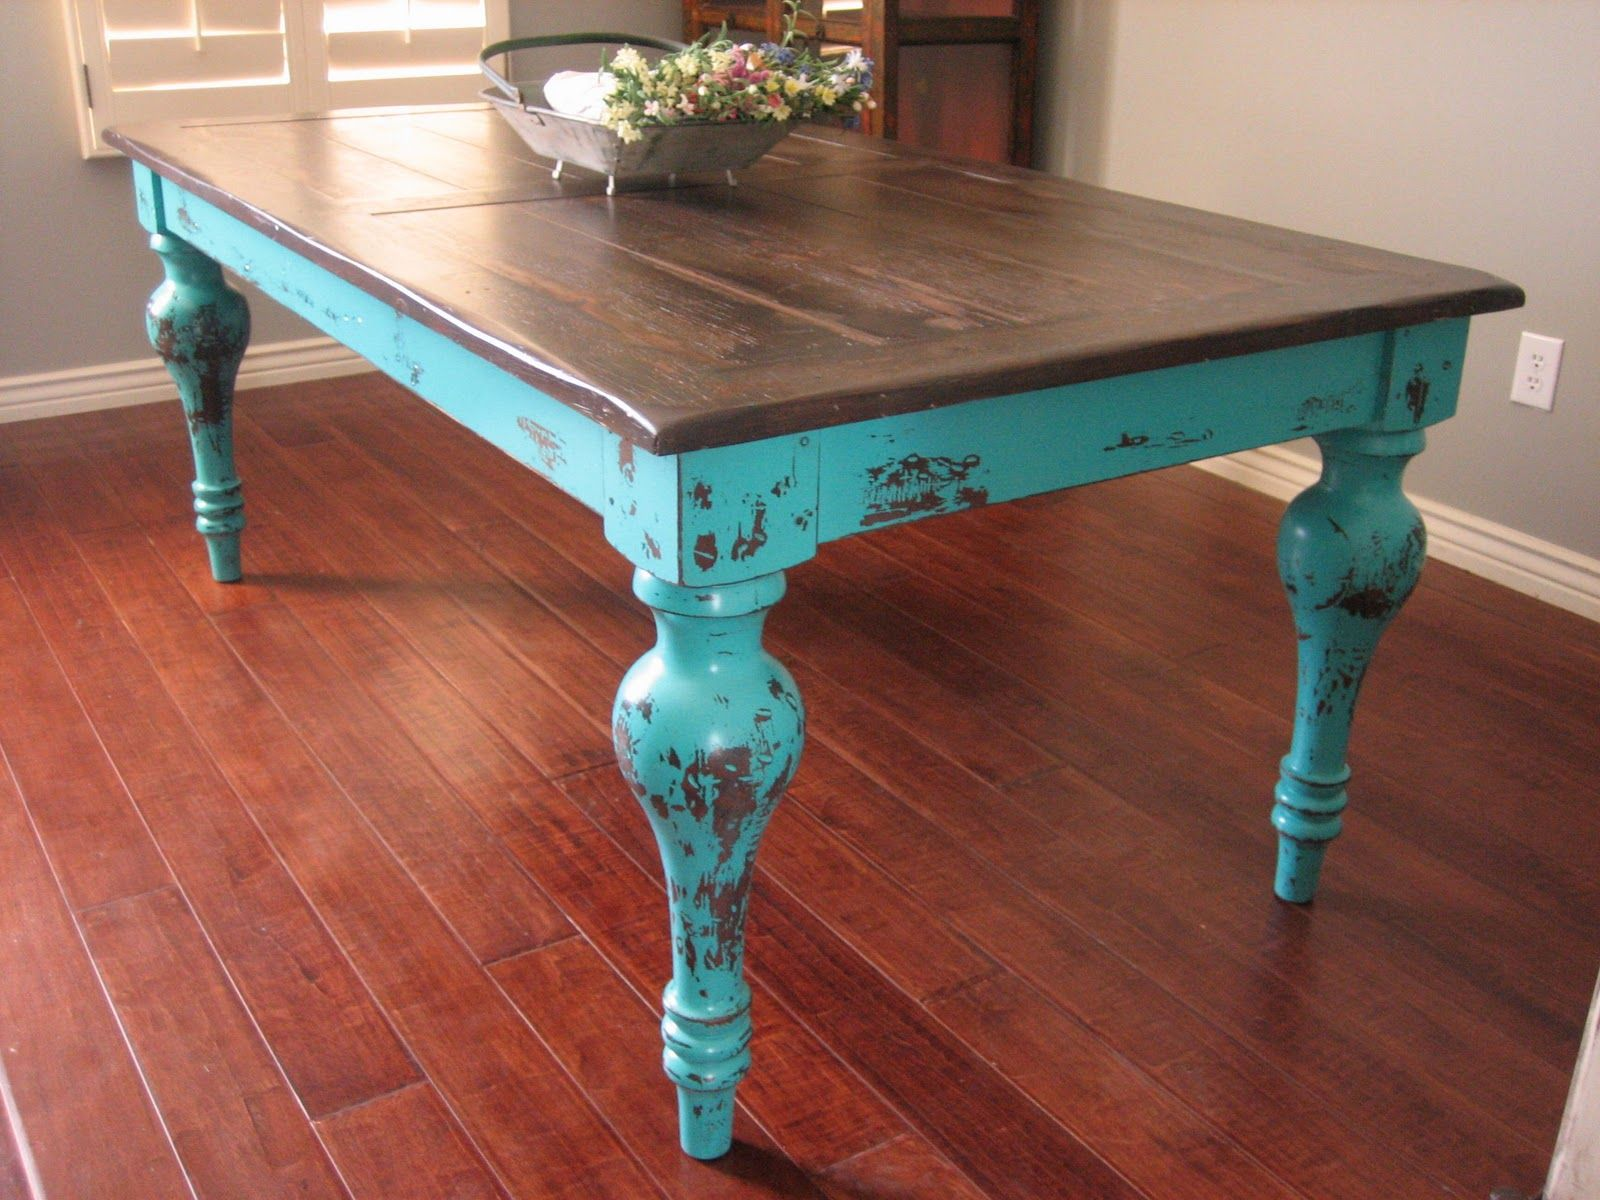 Rustic dining table Inspiration for my dining table redo